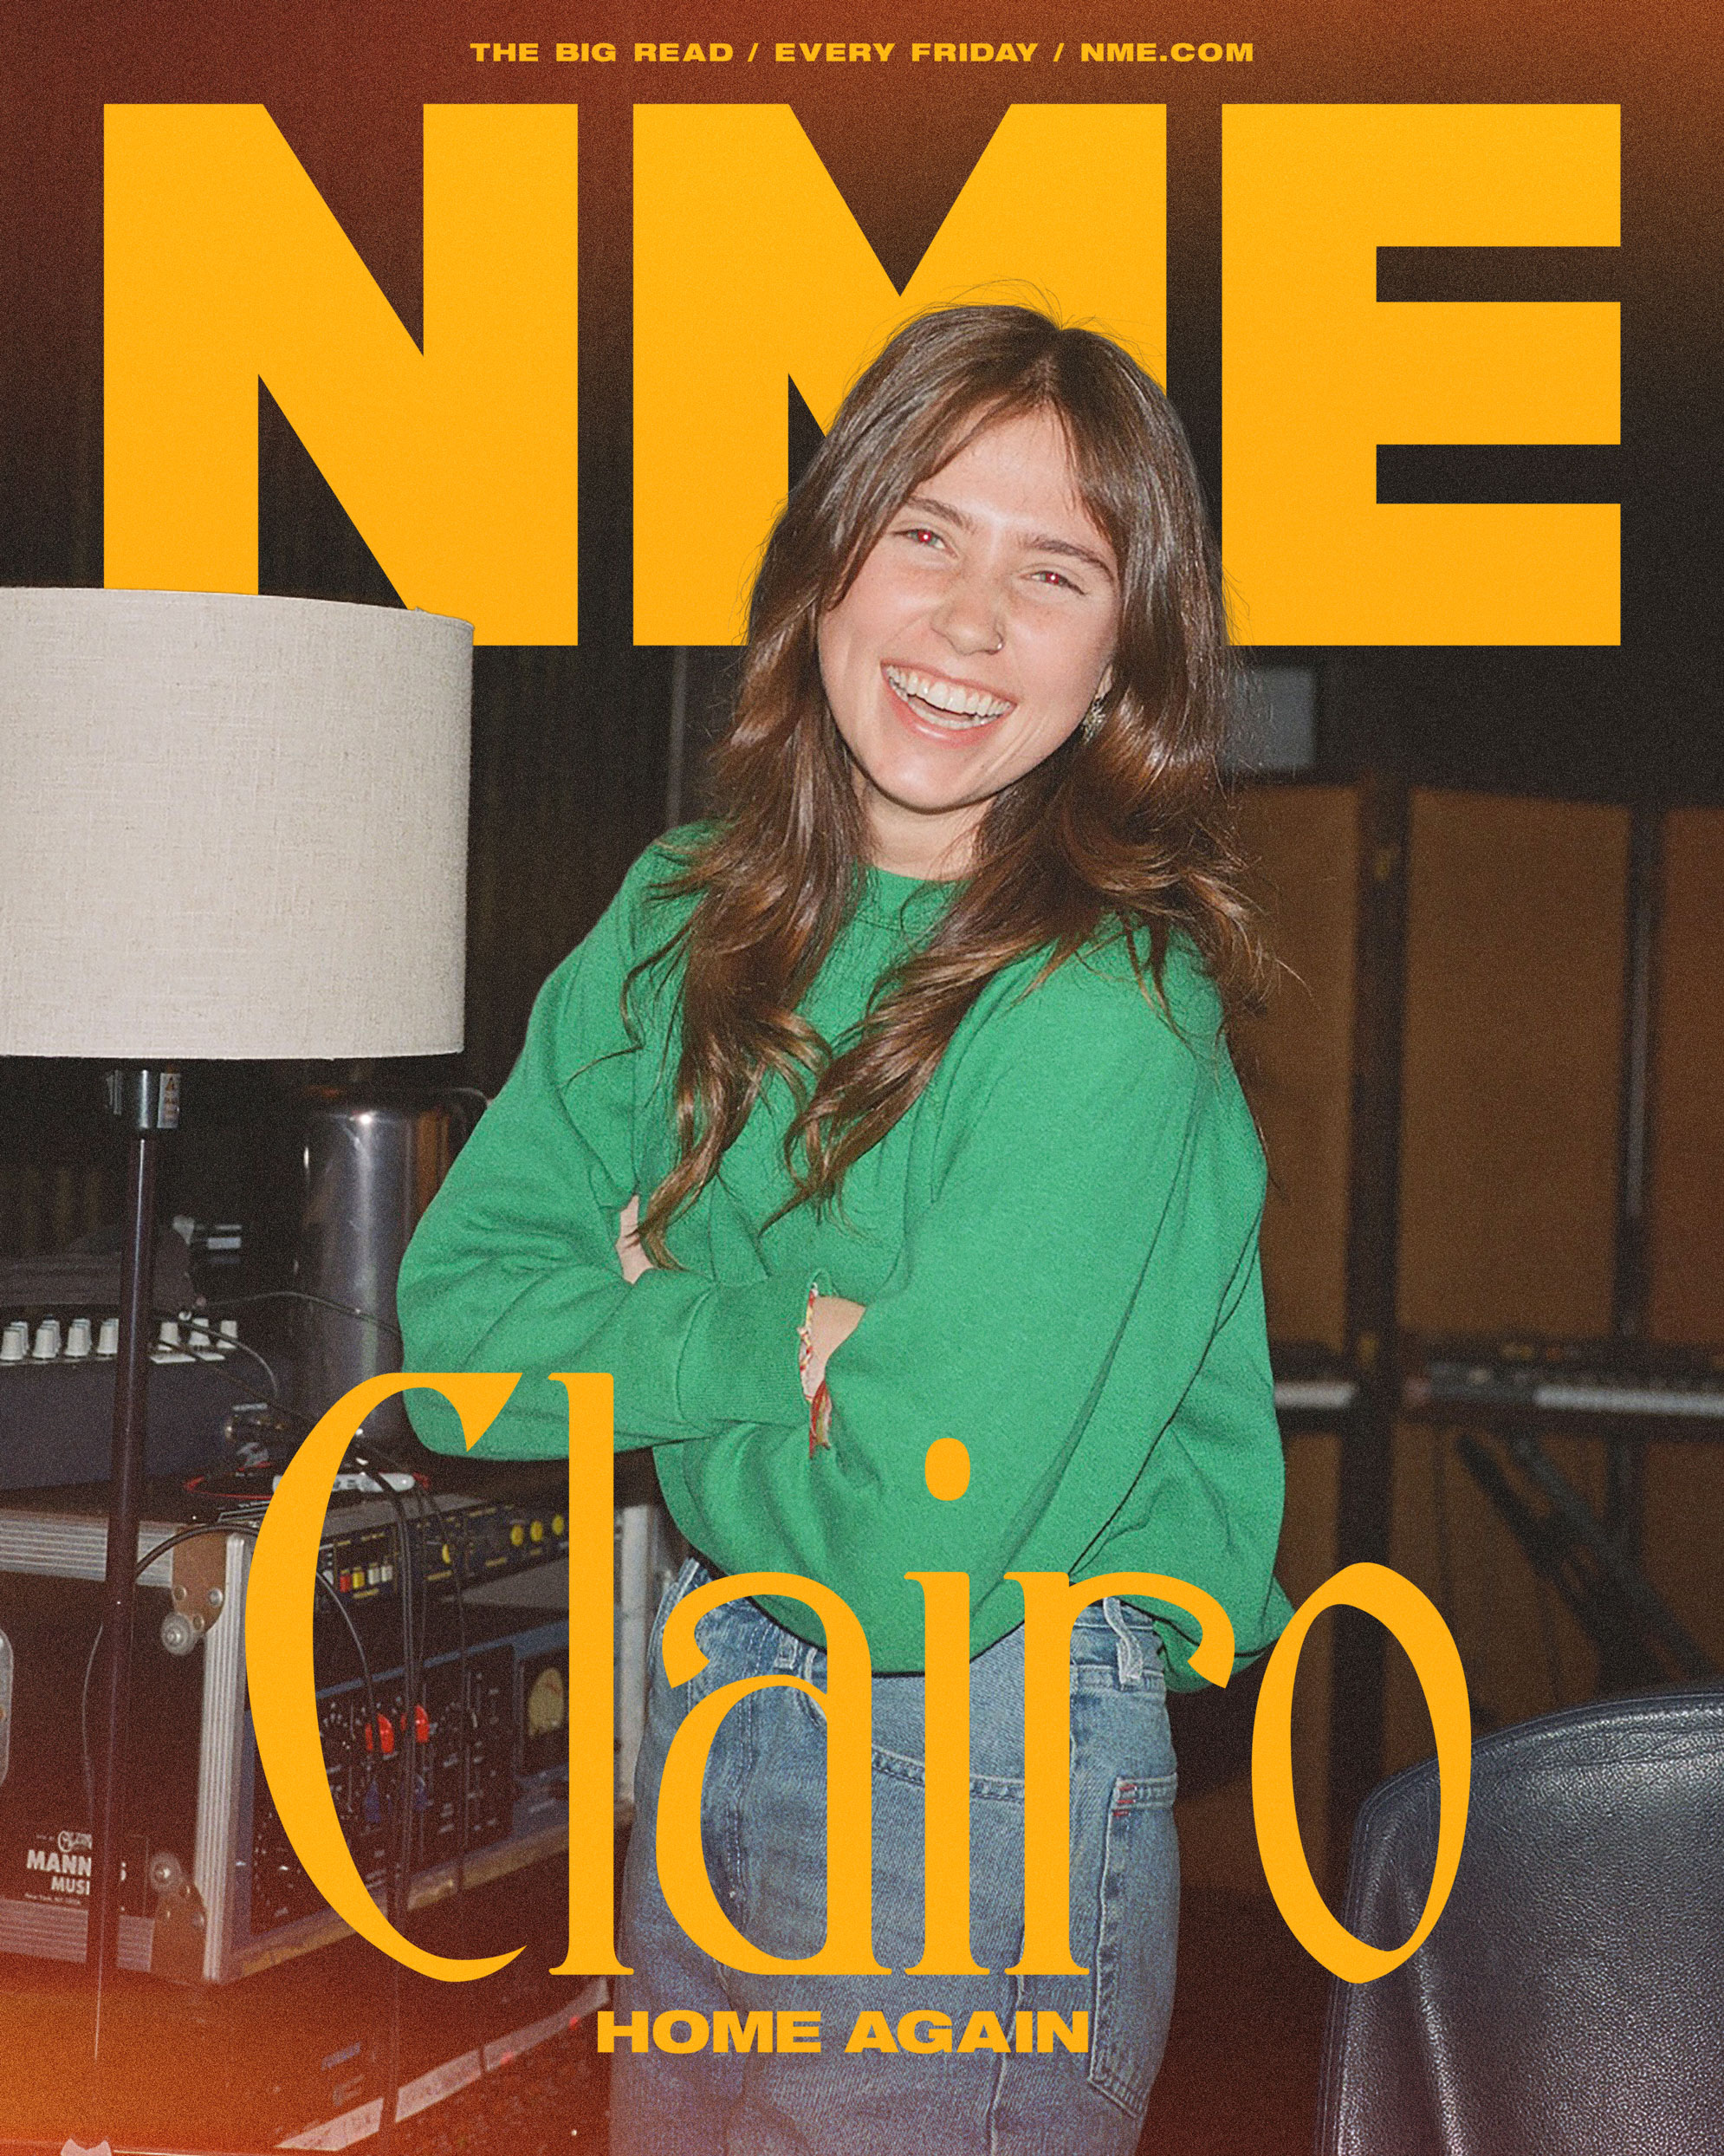 Askhiphop Cover 2021 Clairo